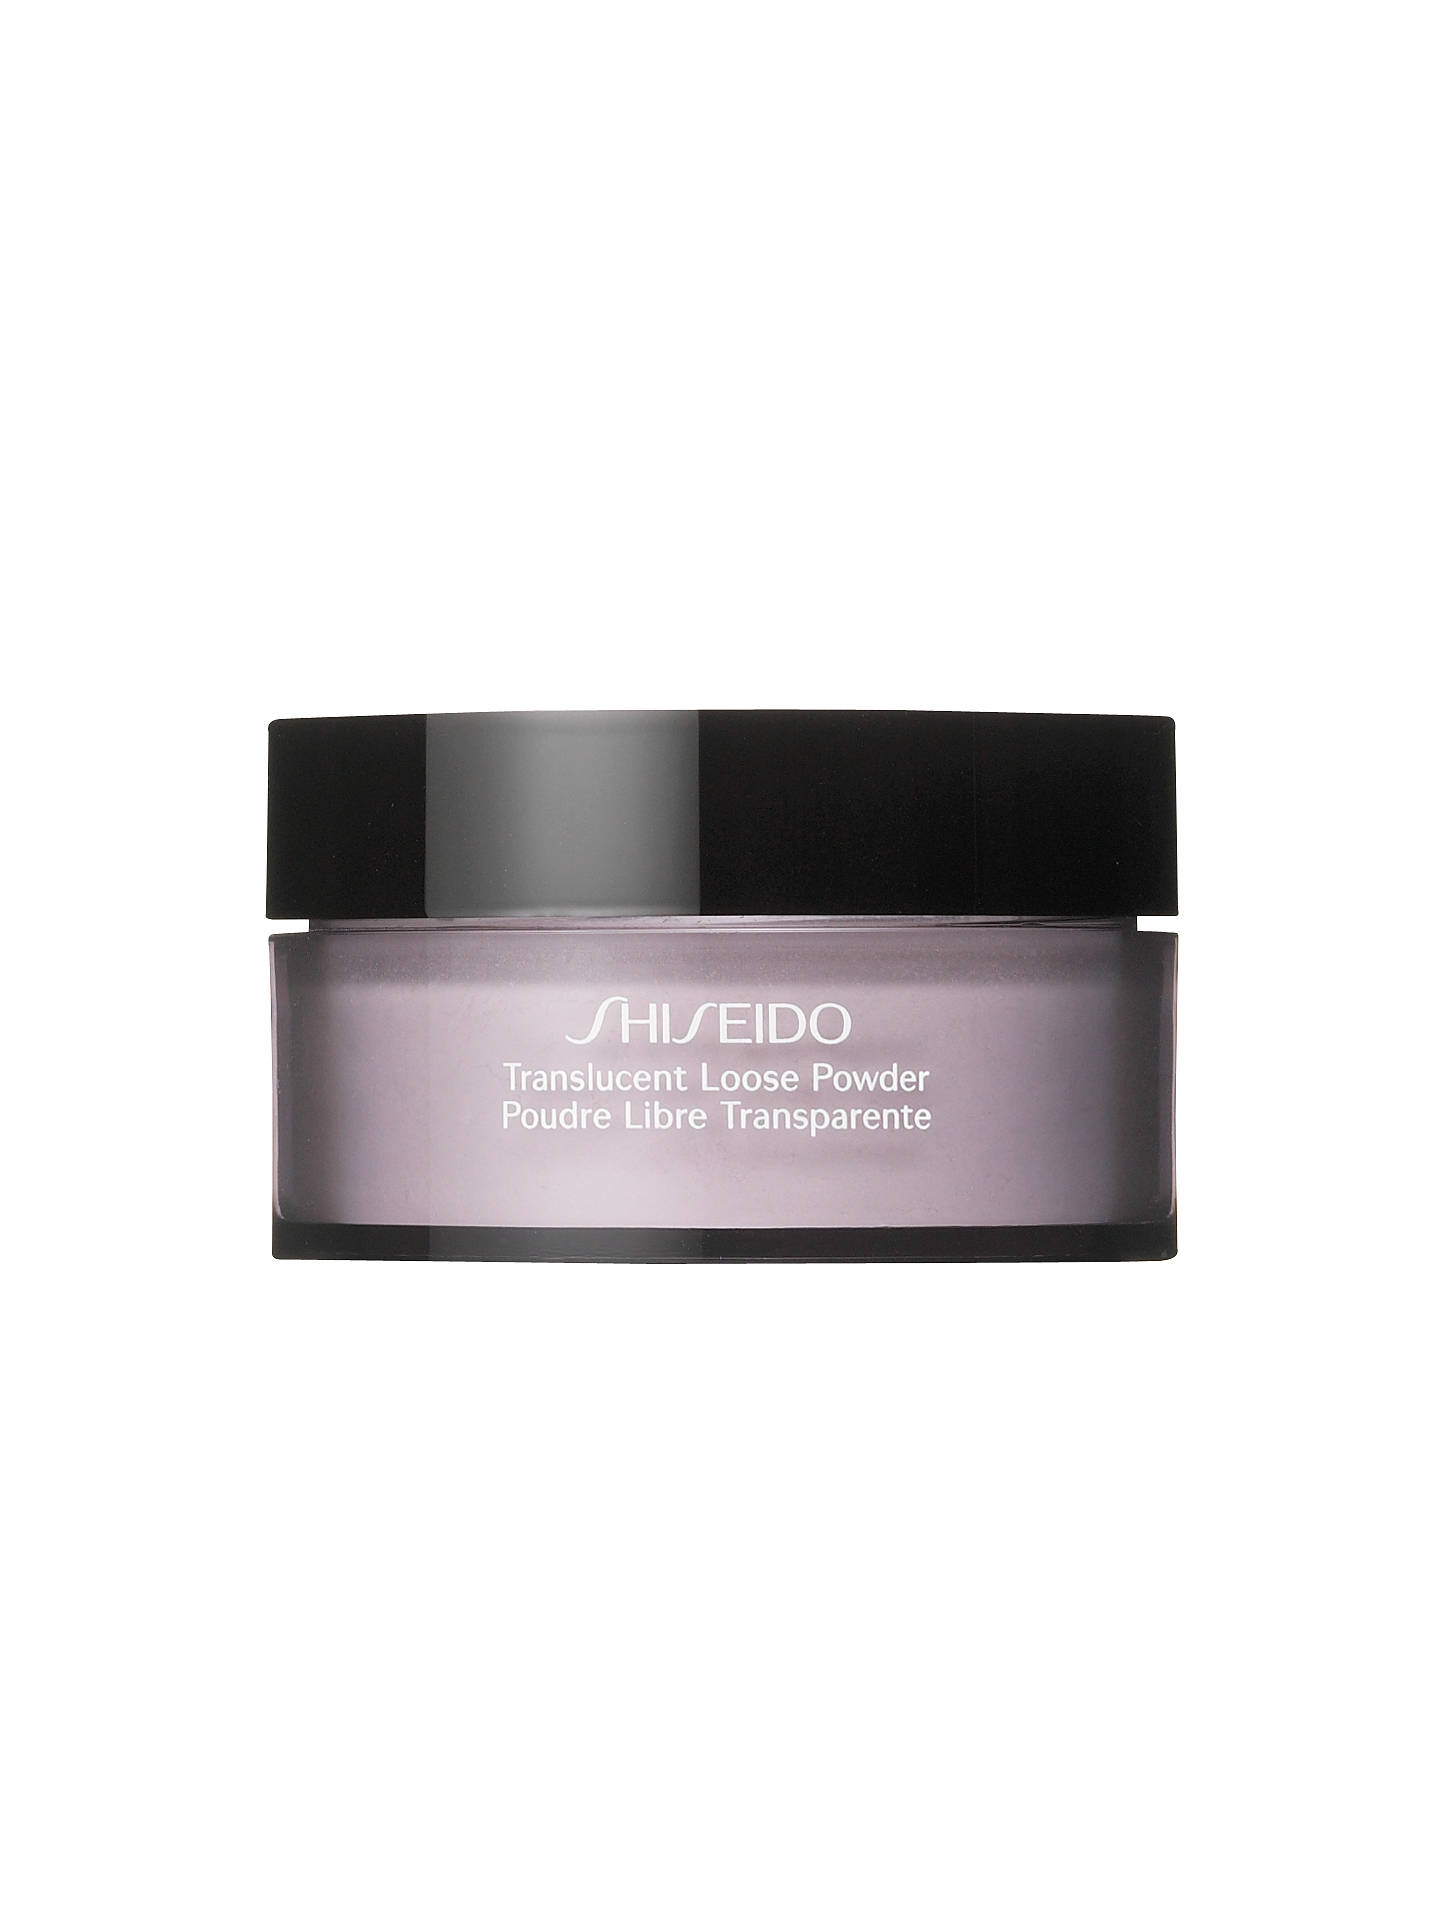 BuyShiseido Translucent Loose Powder Online at johnlewis.com